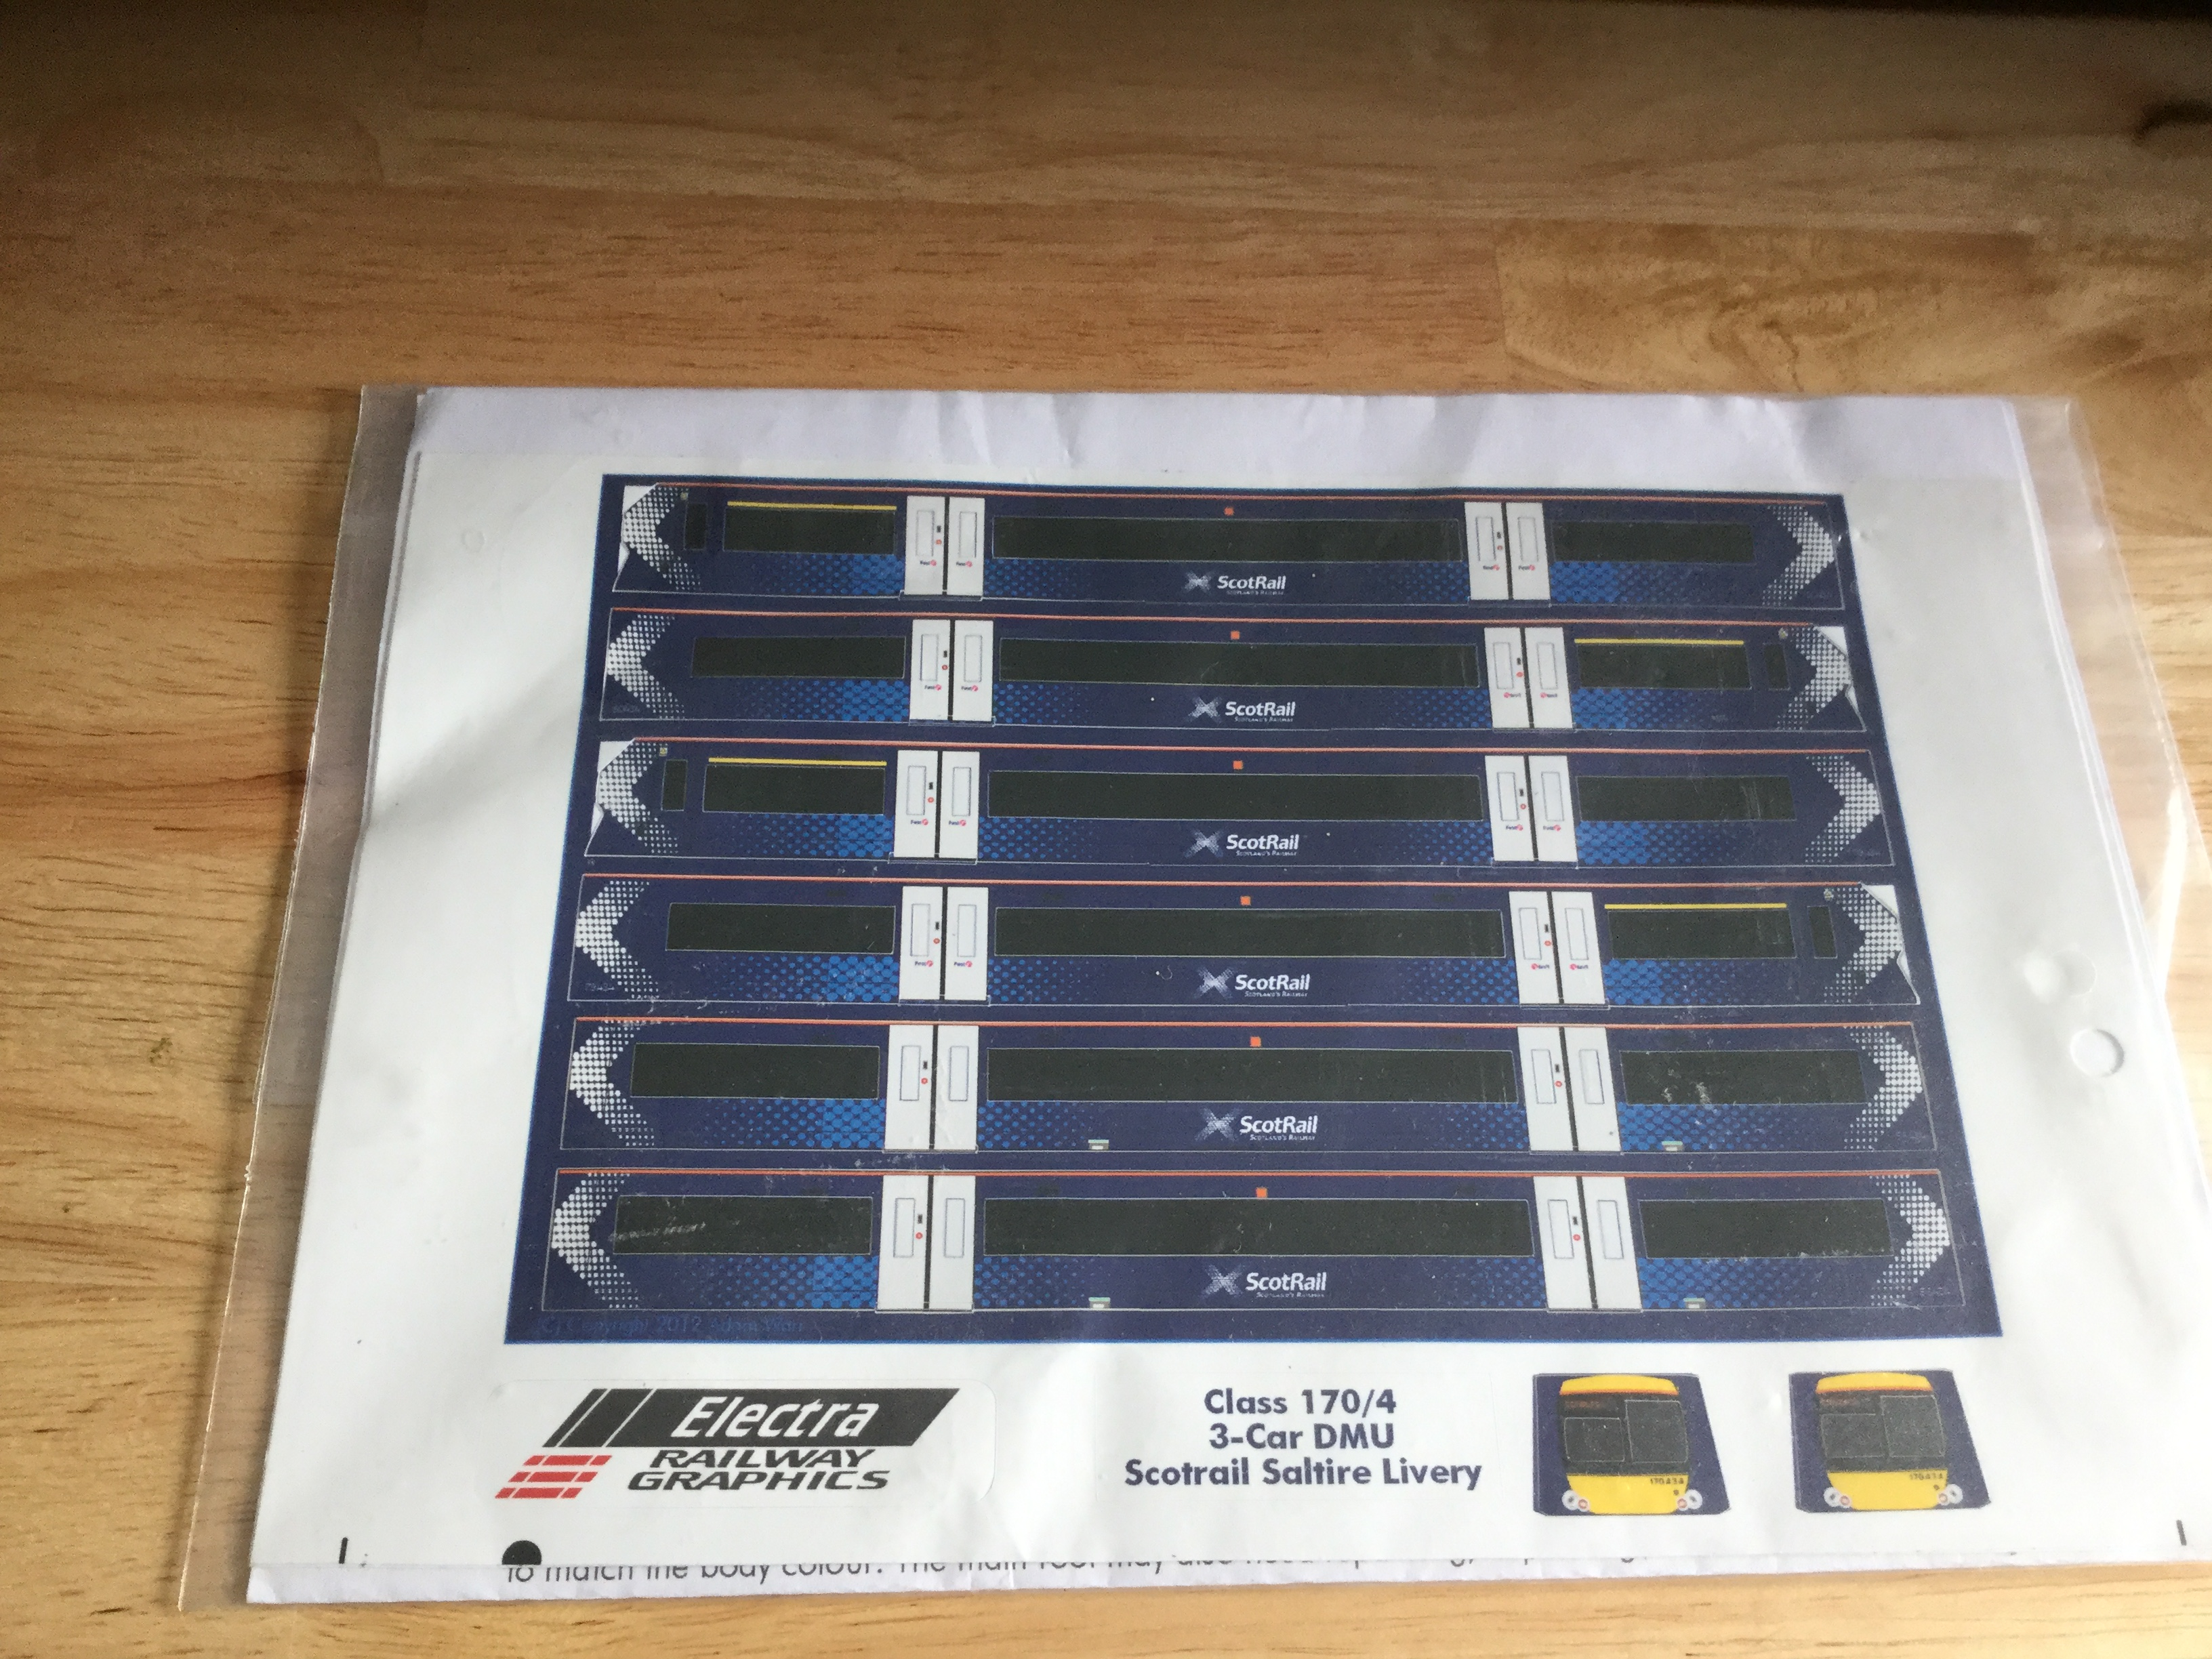 Electra Class 170/4 3 DMU Scotrail Saltaire Livery Vinyls